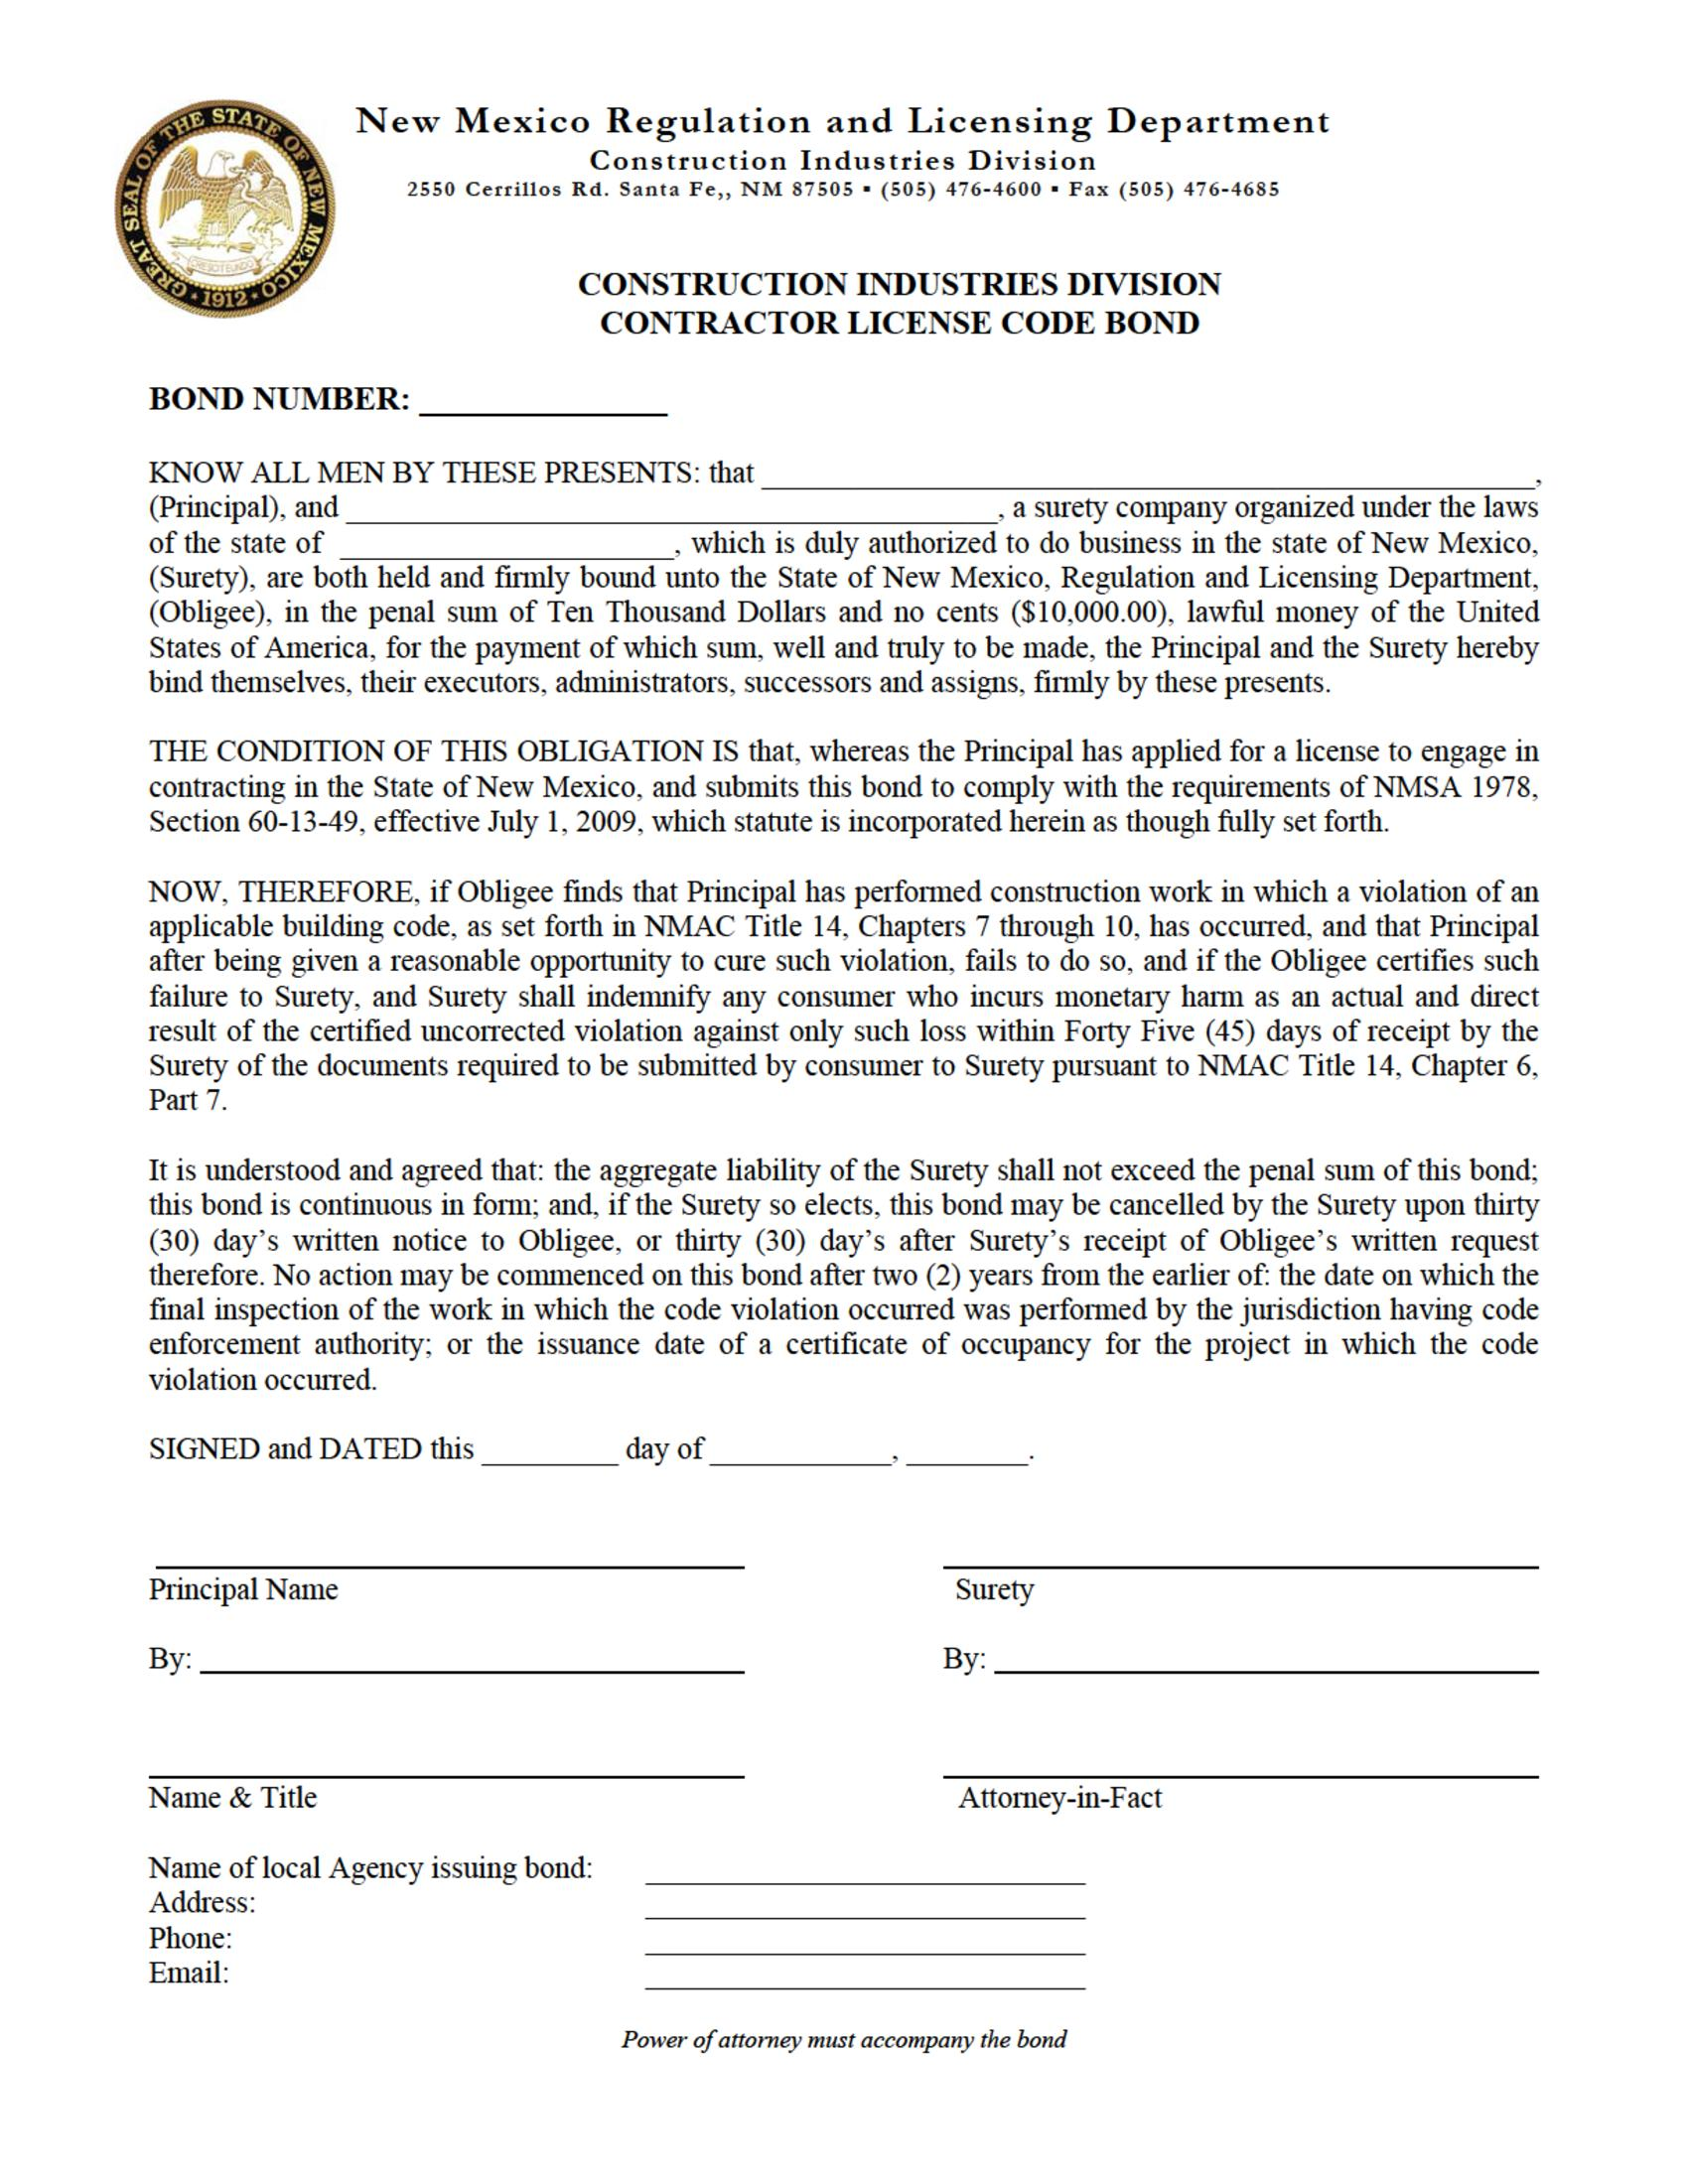 State of New Mexico Contractor License Code sample image